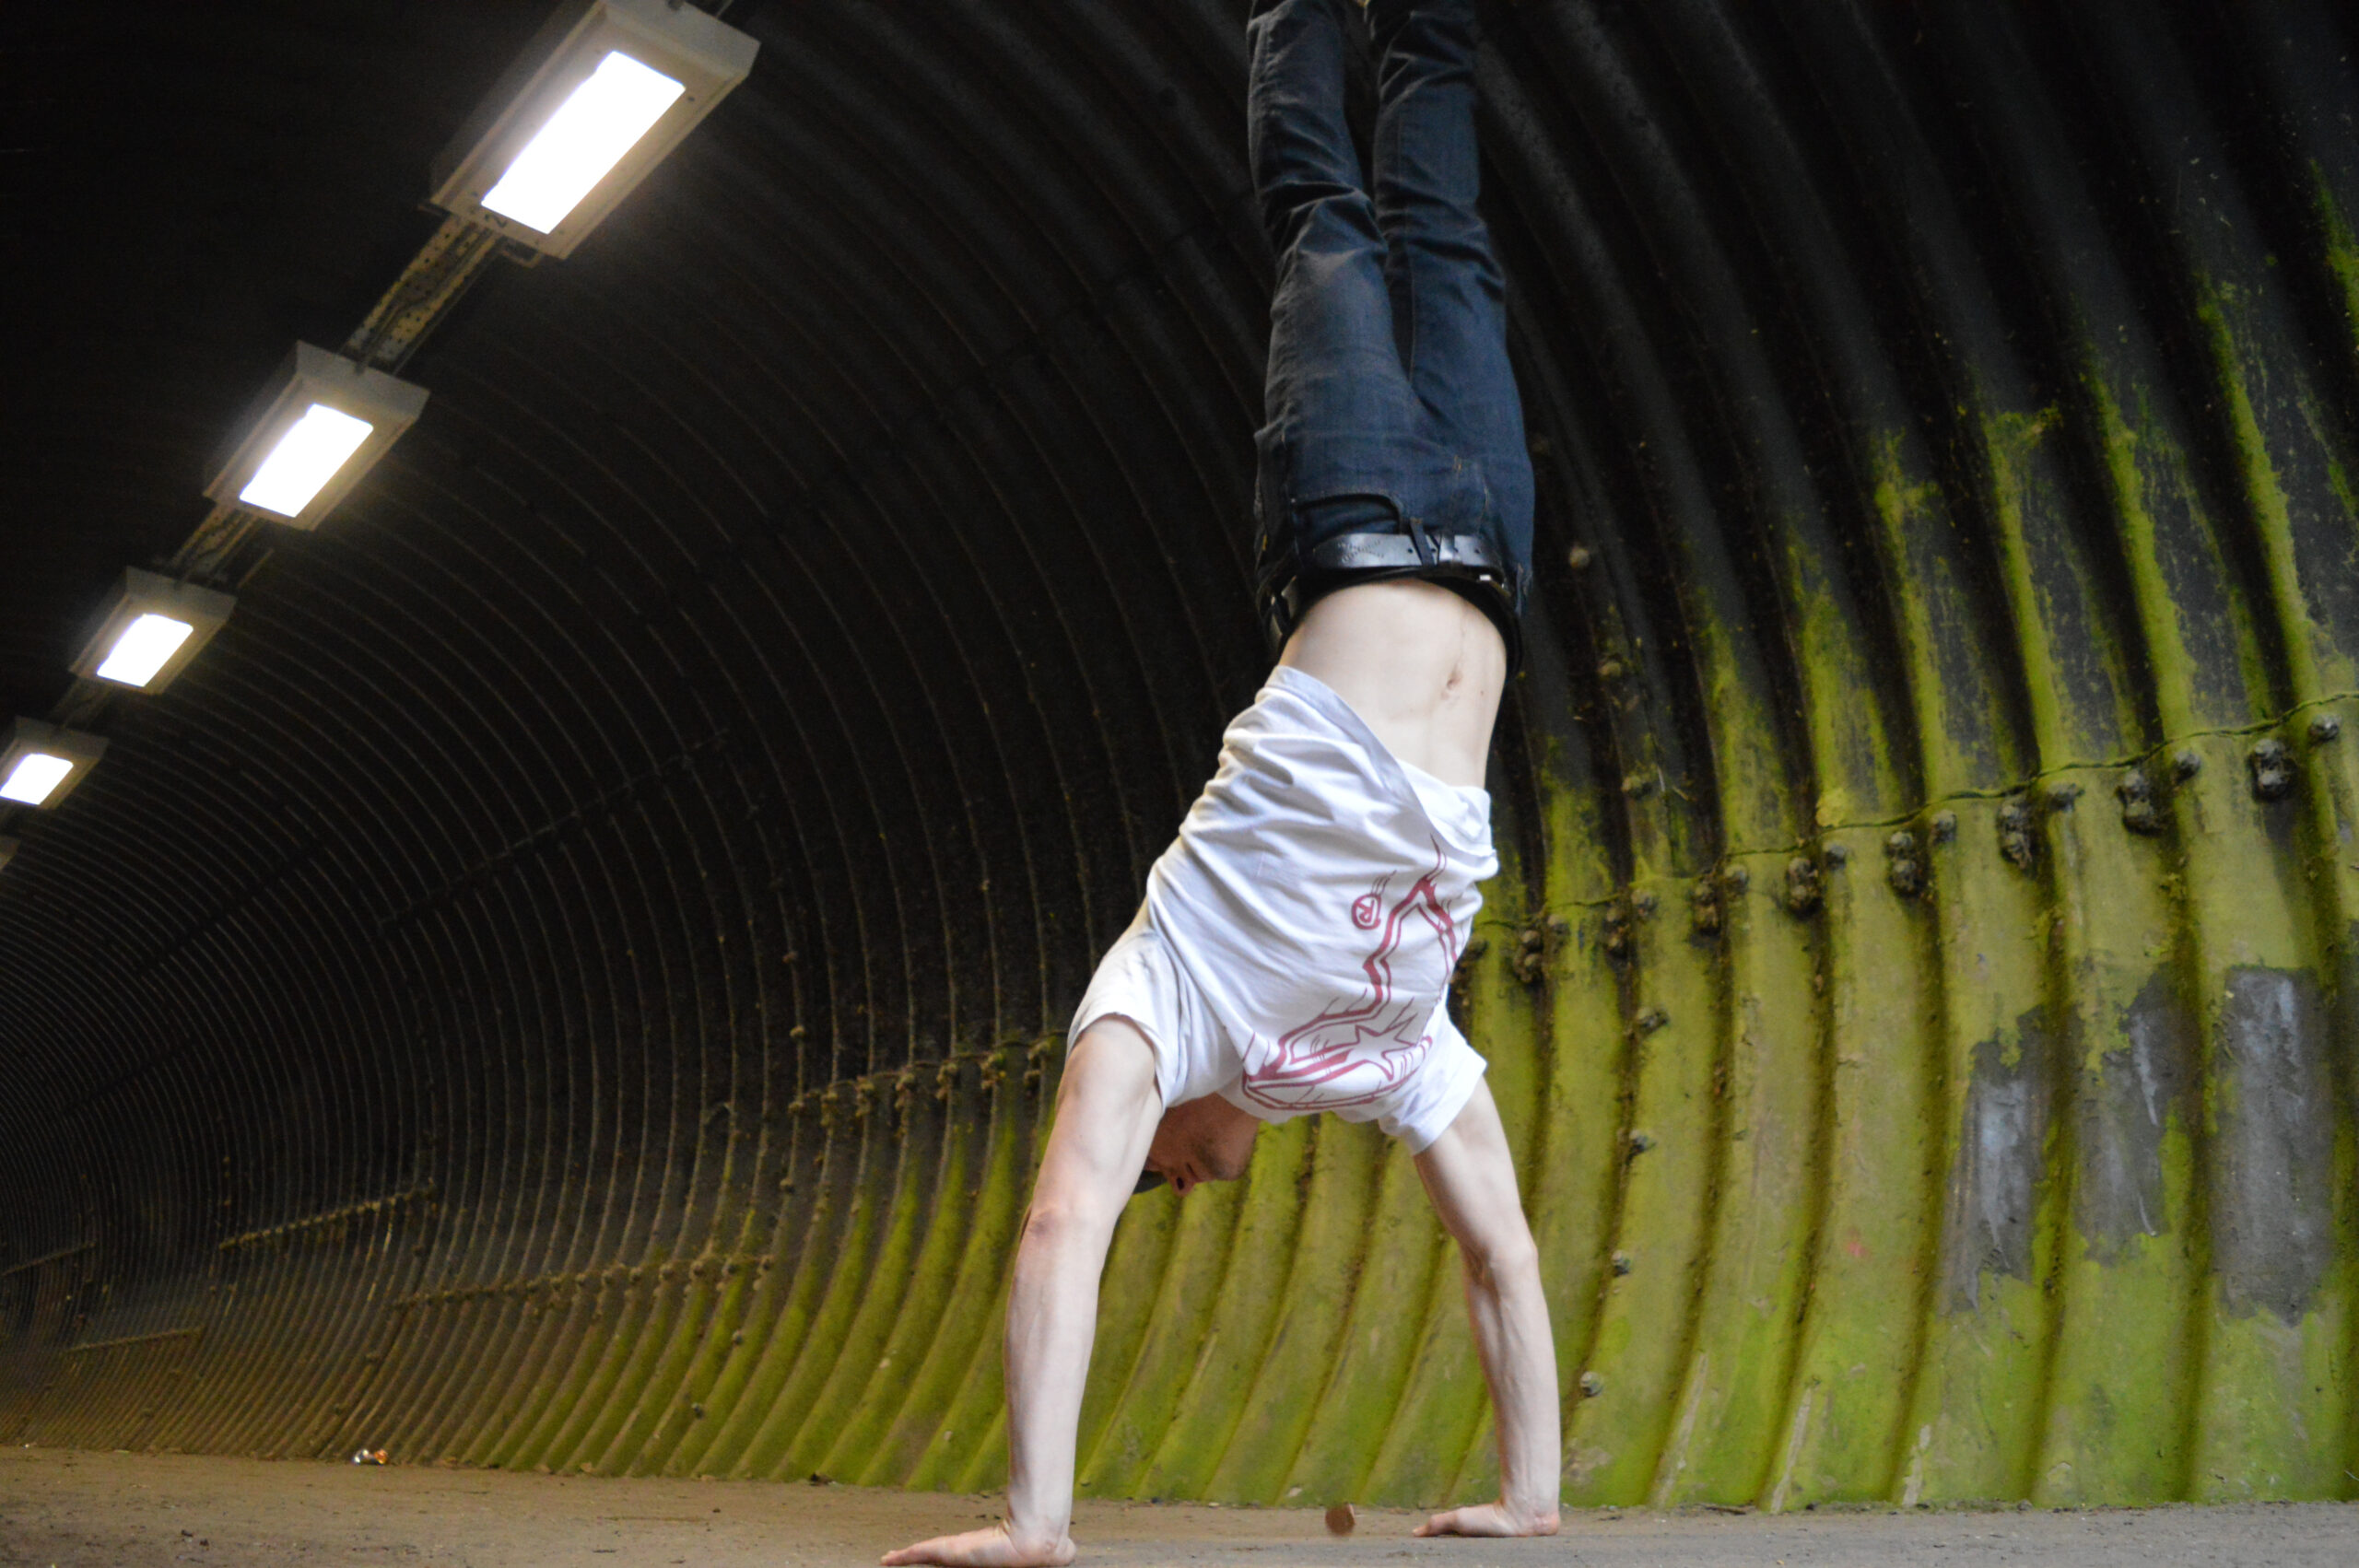 Handstand Different Training Methods More Than Lifting